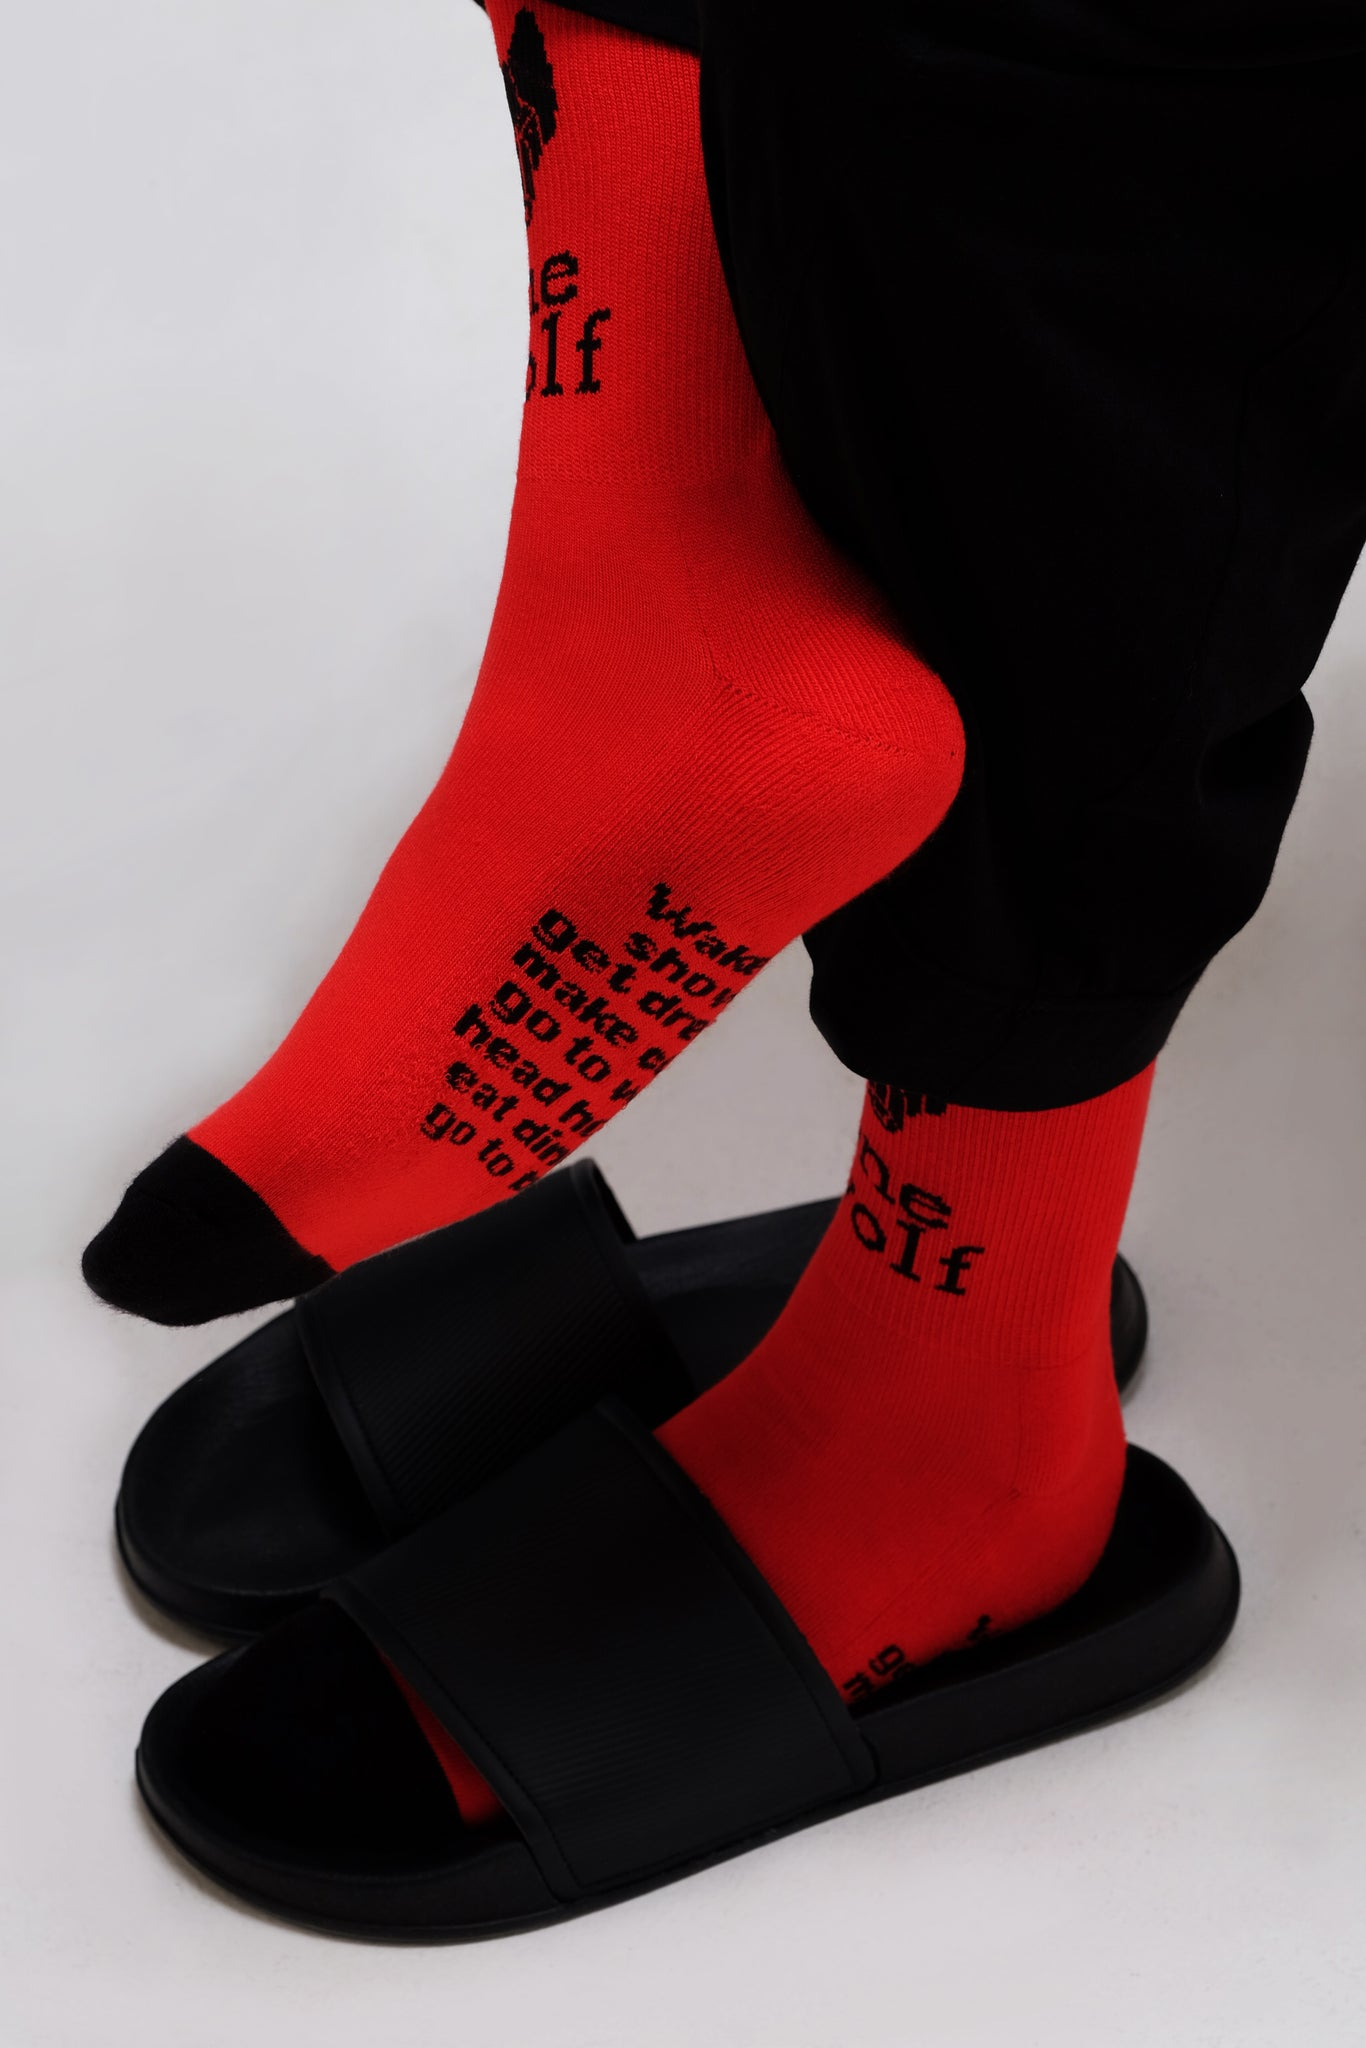 CITY MONK socks